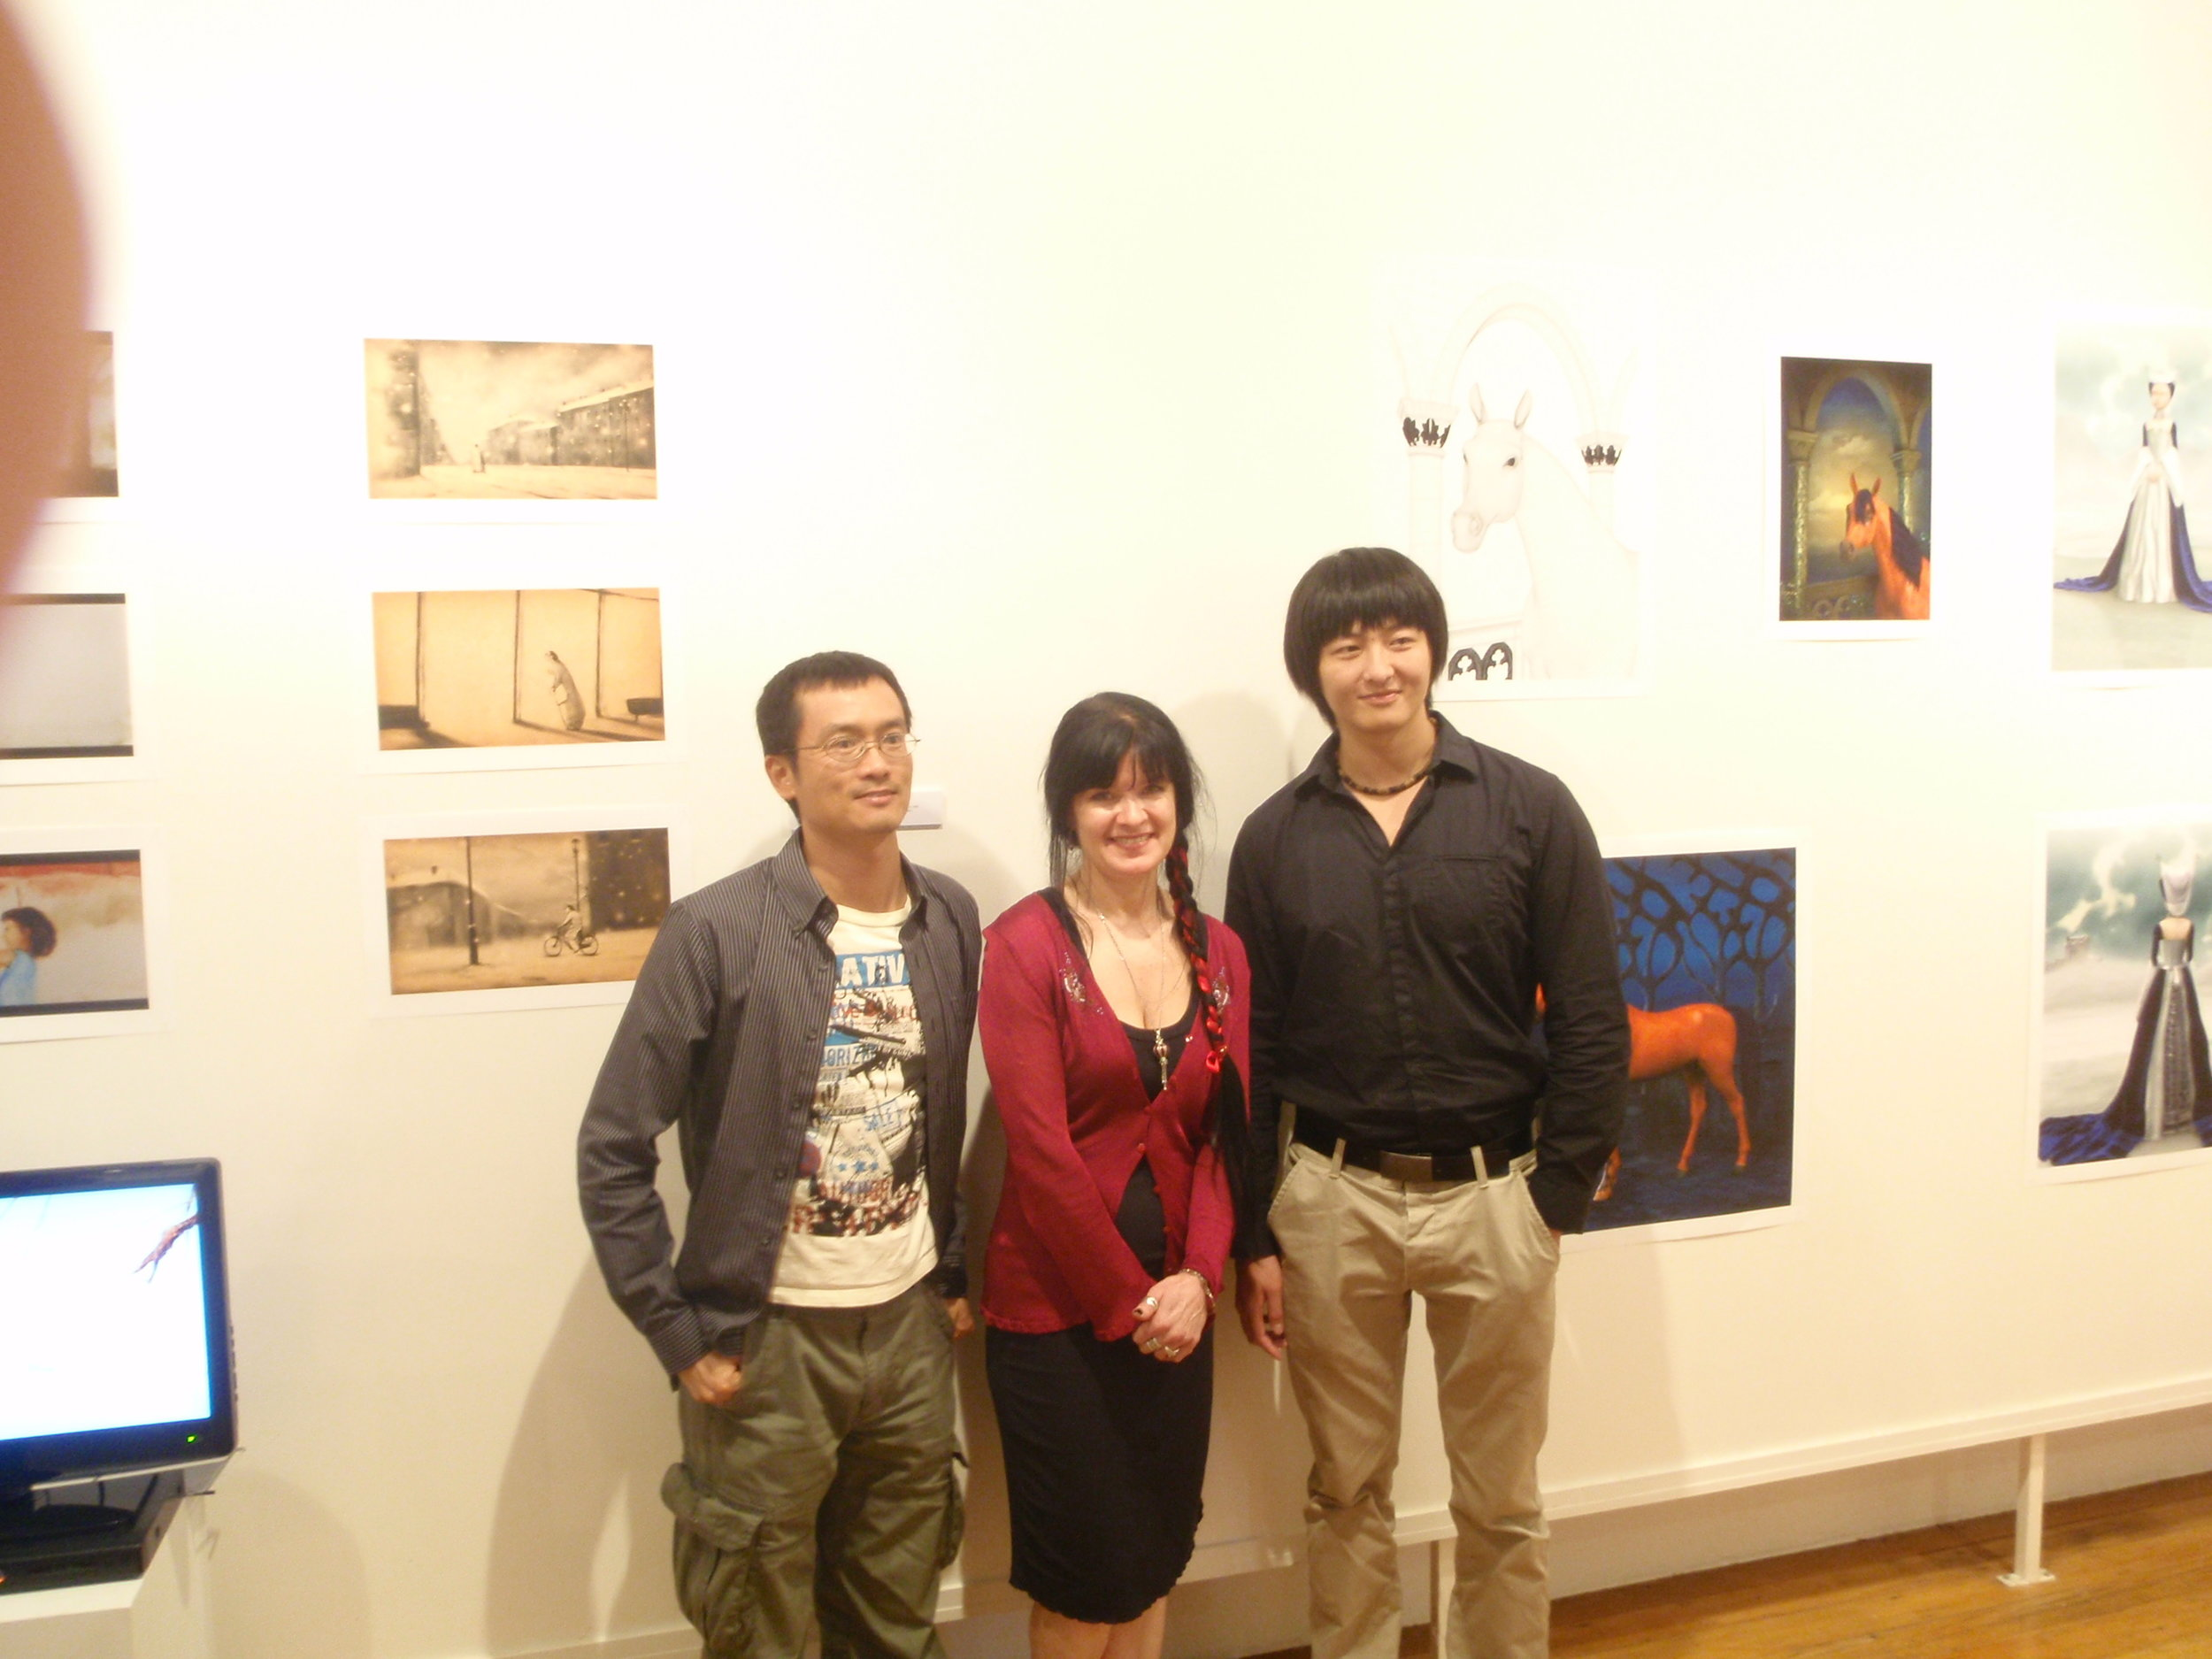 (Jimmy) Zhi-ming Su, Louise Harvey and Xin Li in front of Xin and Louise's work